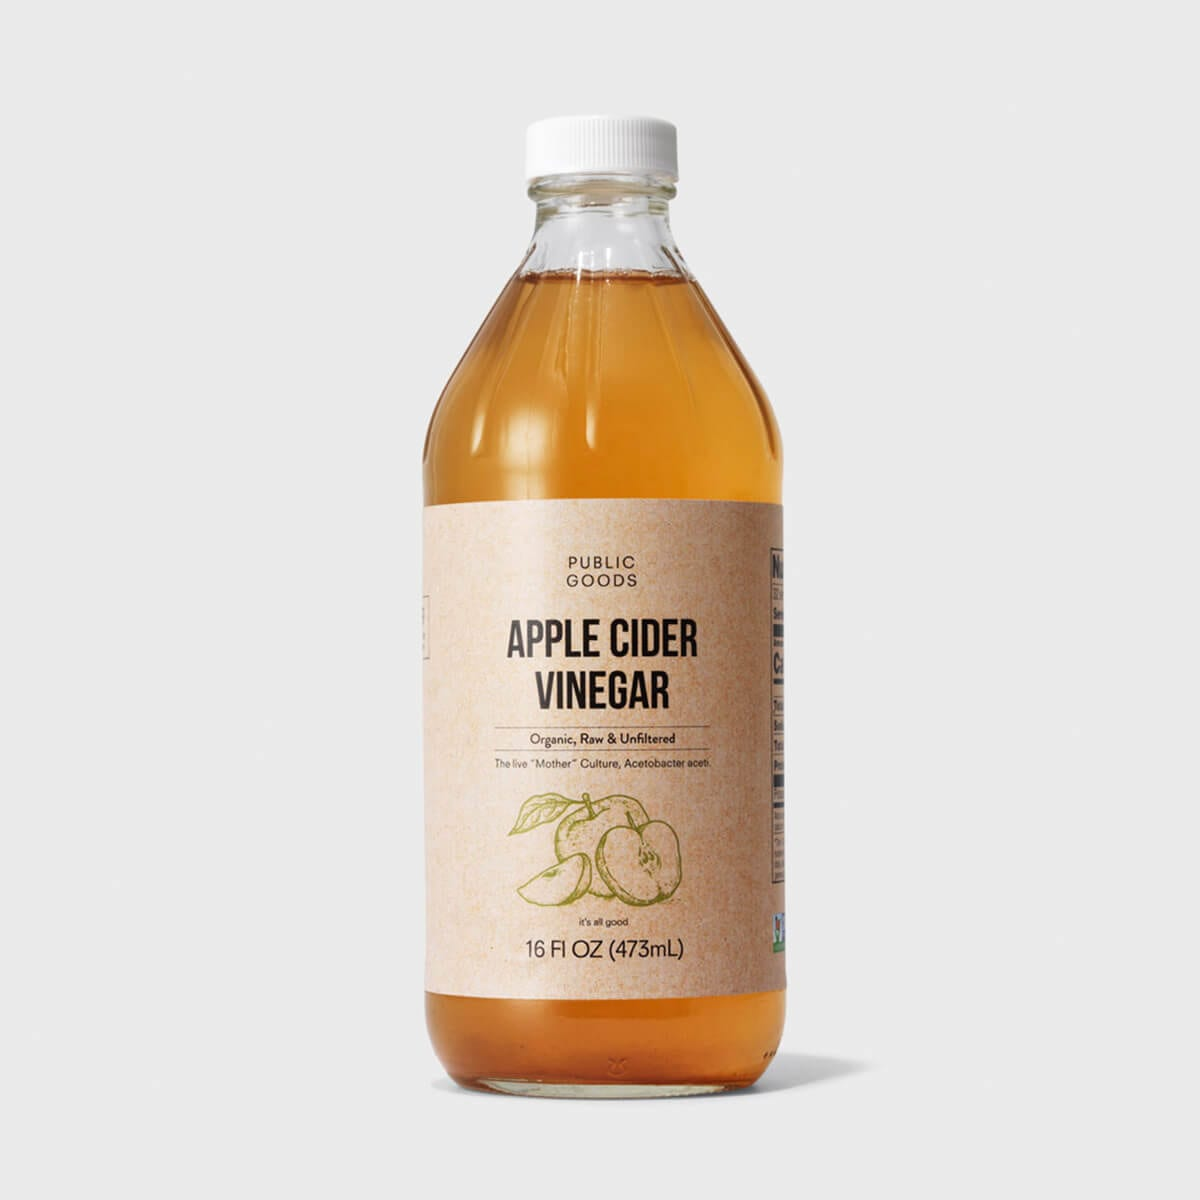 Does Apple Cider Vinegar Go Bad? How Long Does It Last